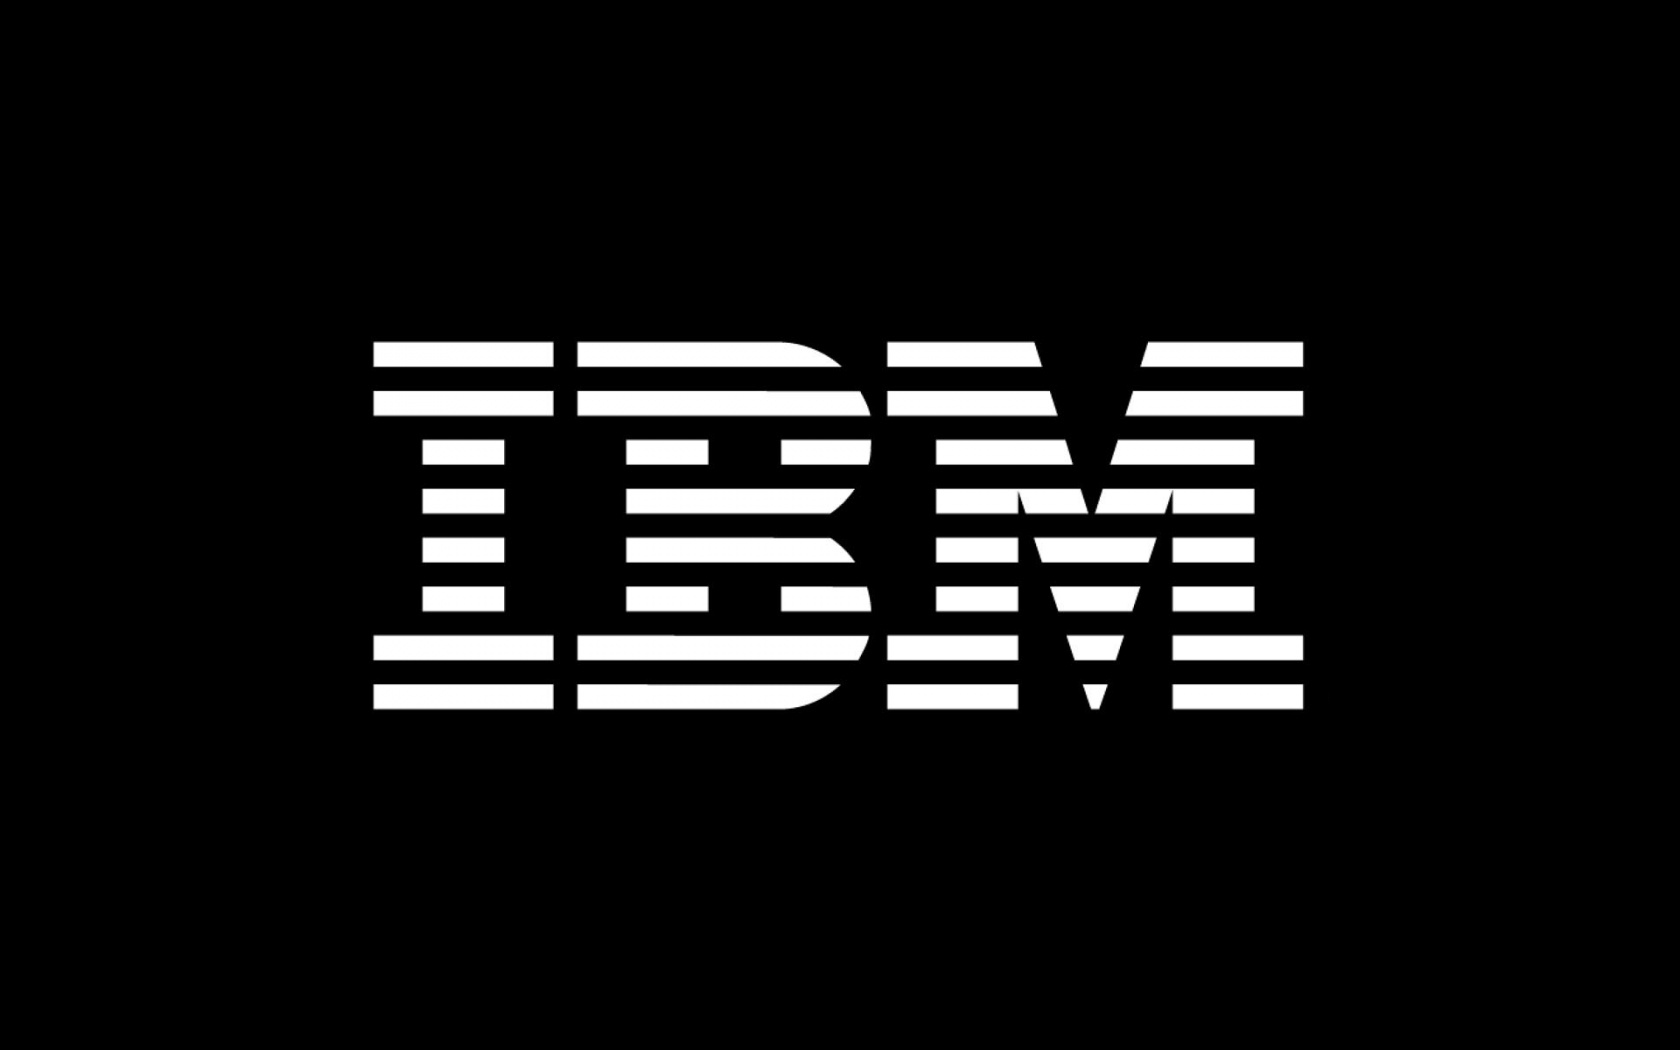 IBM PH logo